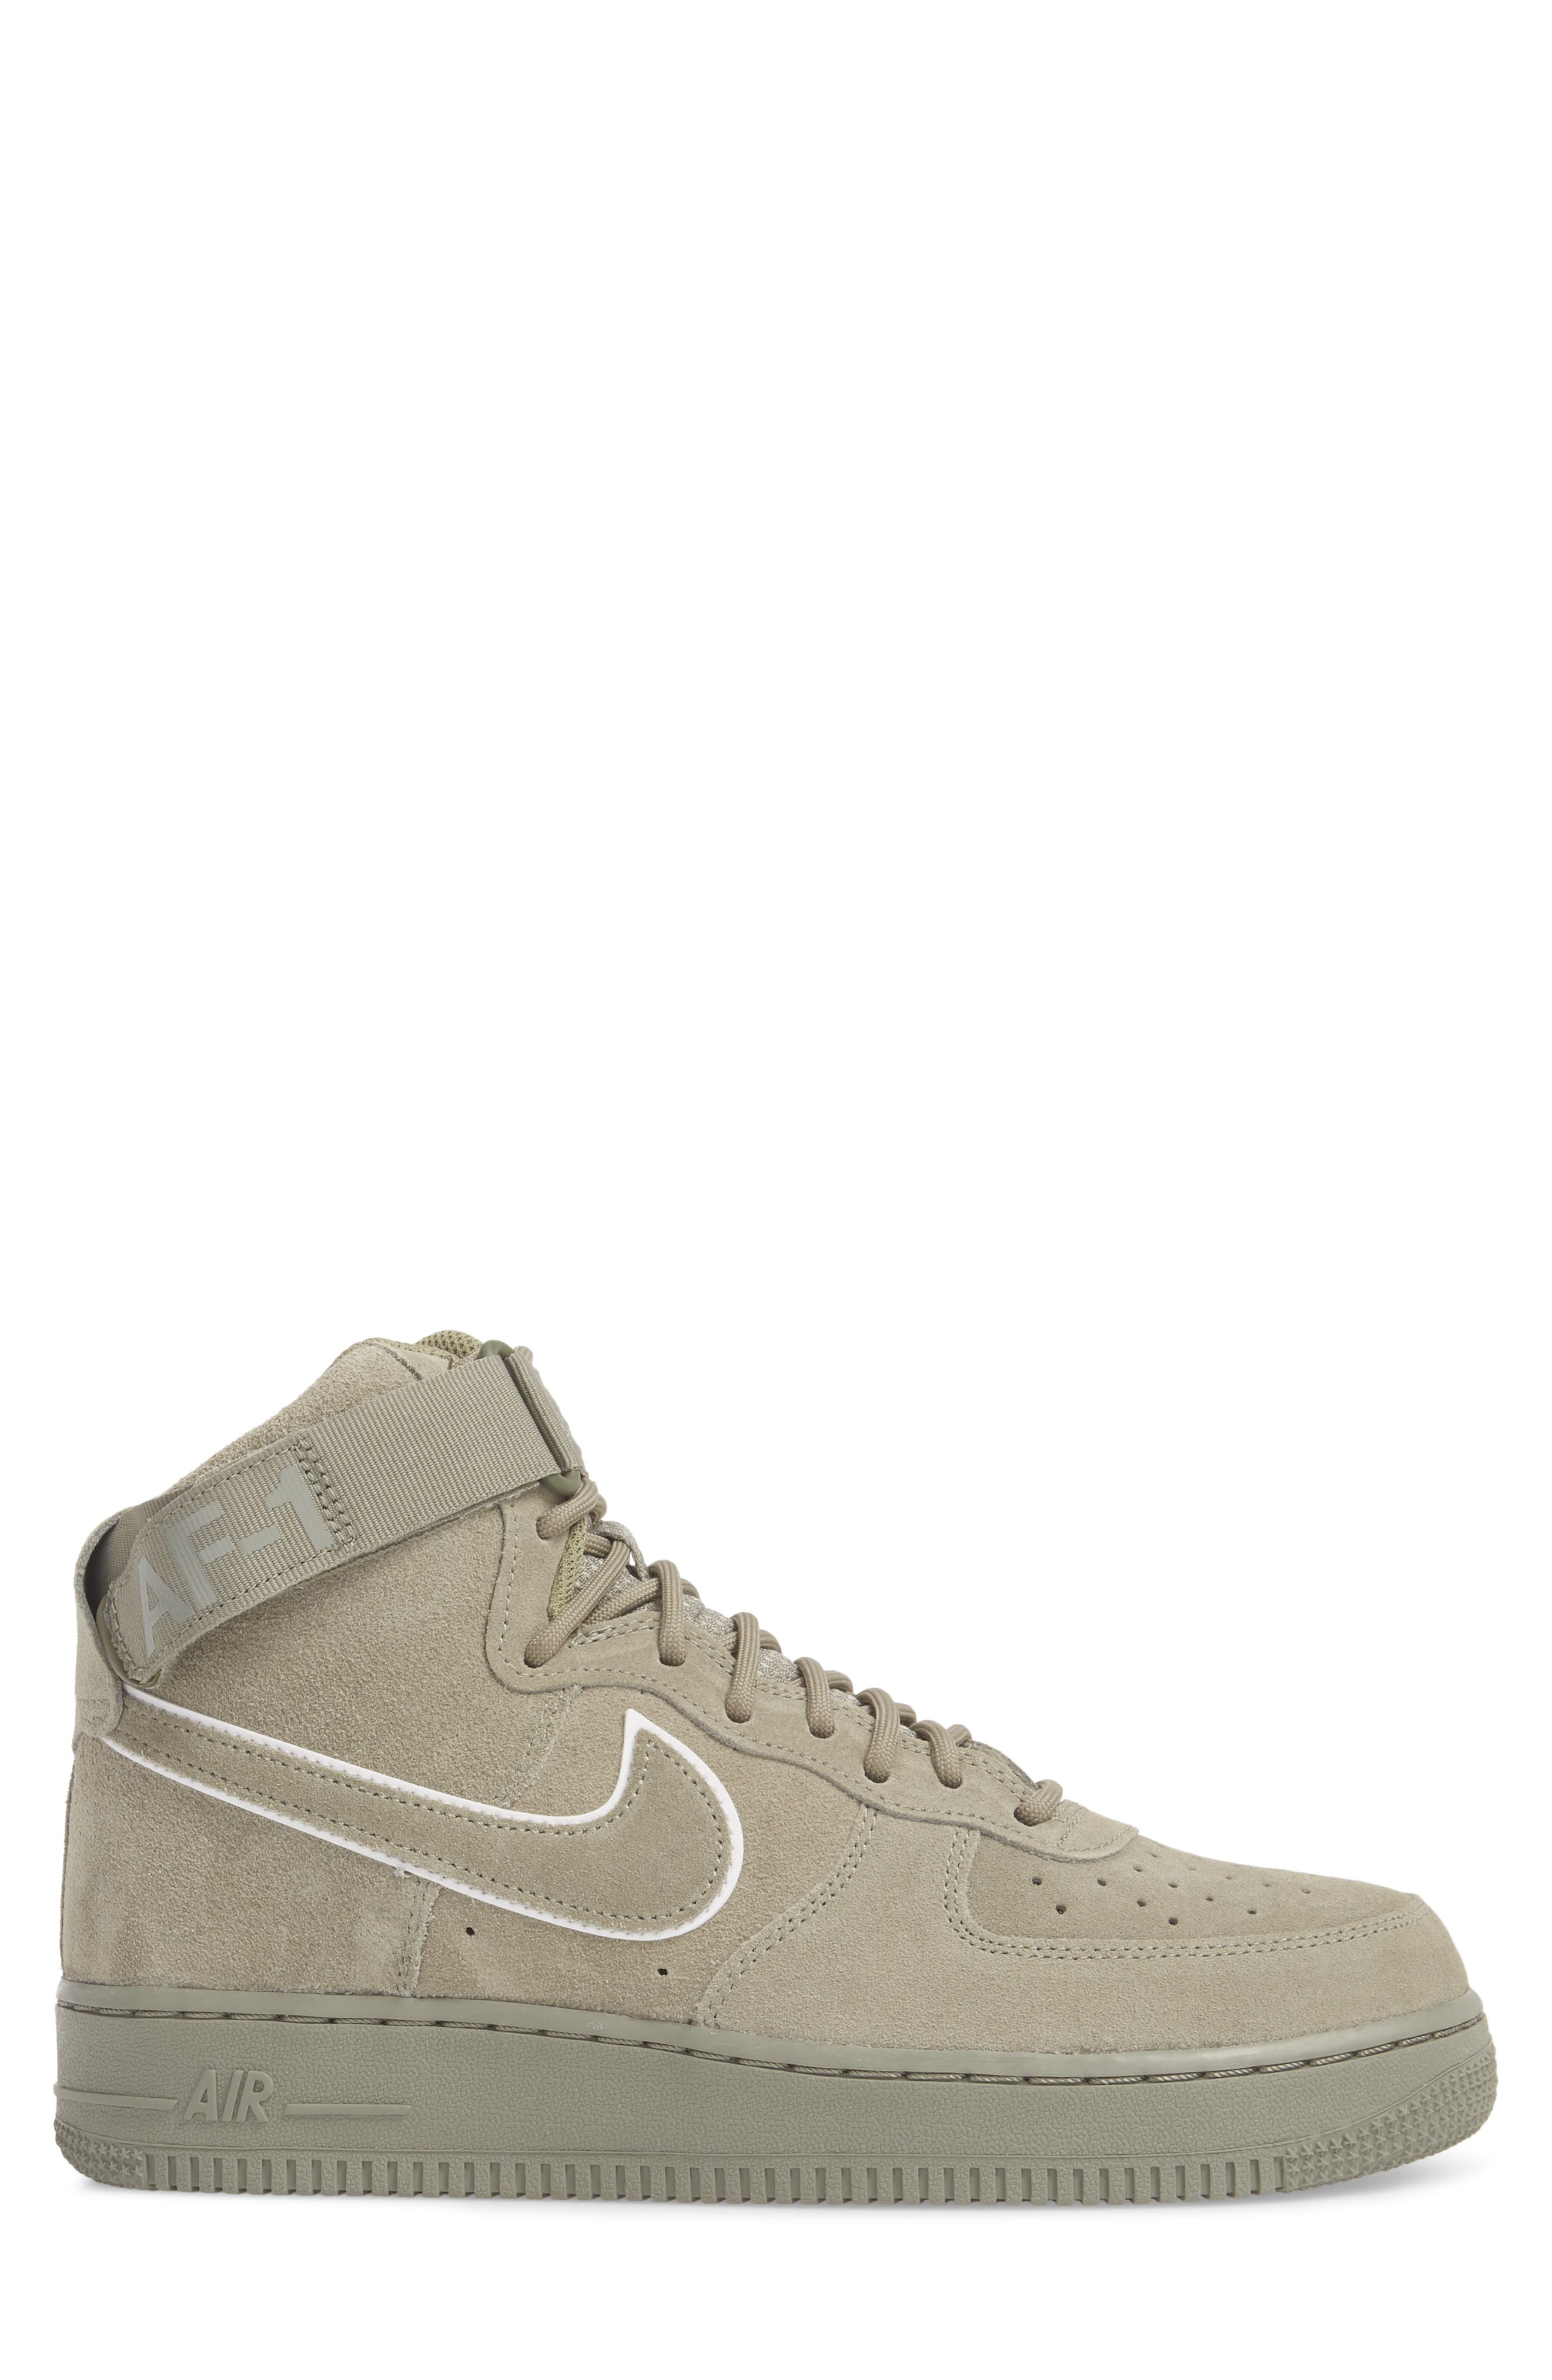 Air Force 1 High '07 LV8 Suede Sneaker,                             Alternate thumbnail 6, color,